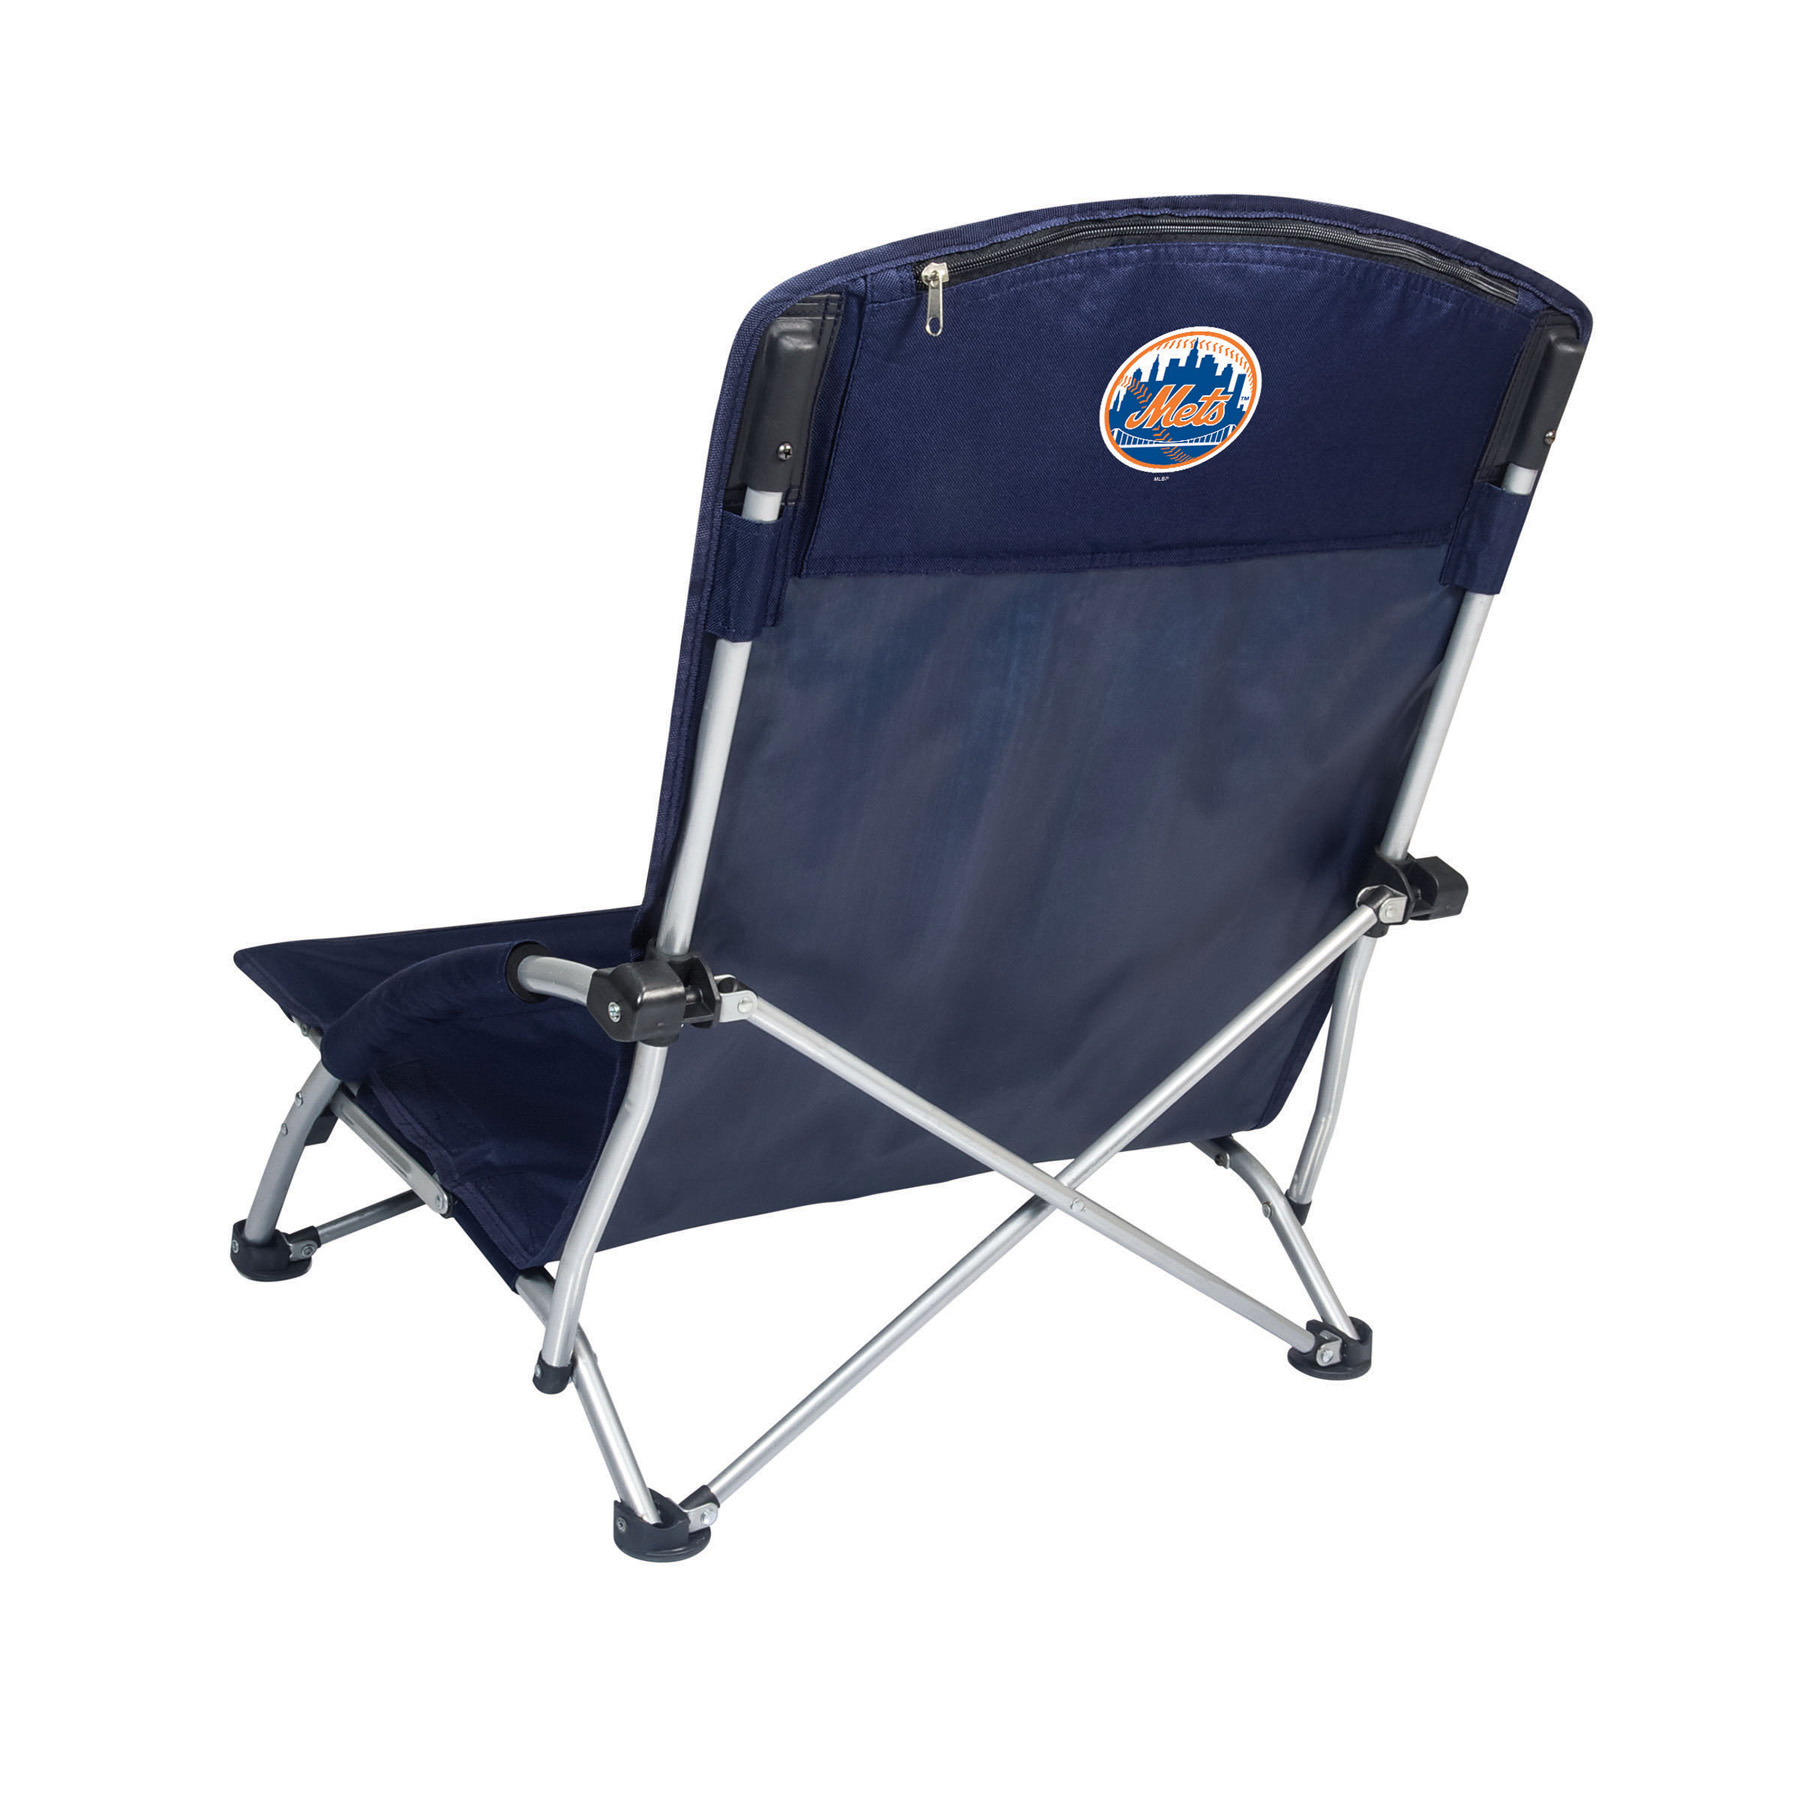 Picnic Time Tranquility Chair - MLB - Navy/Slate